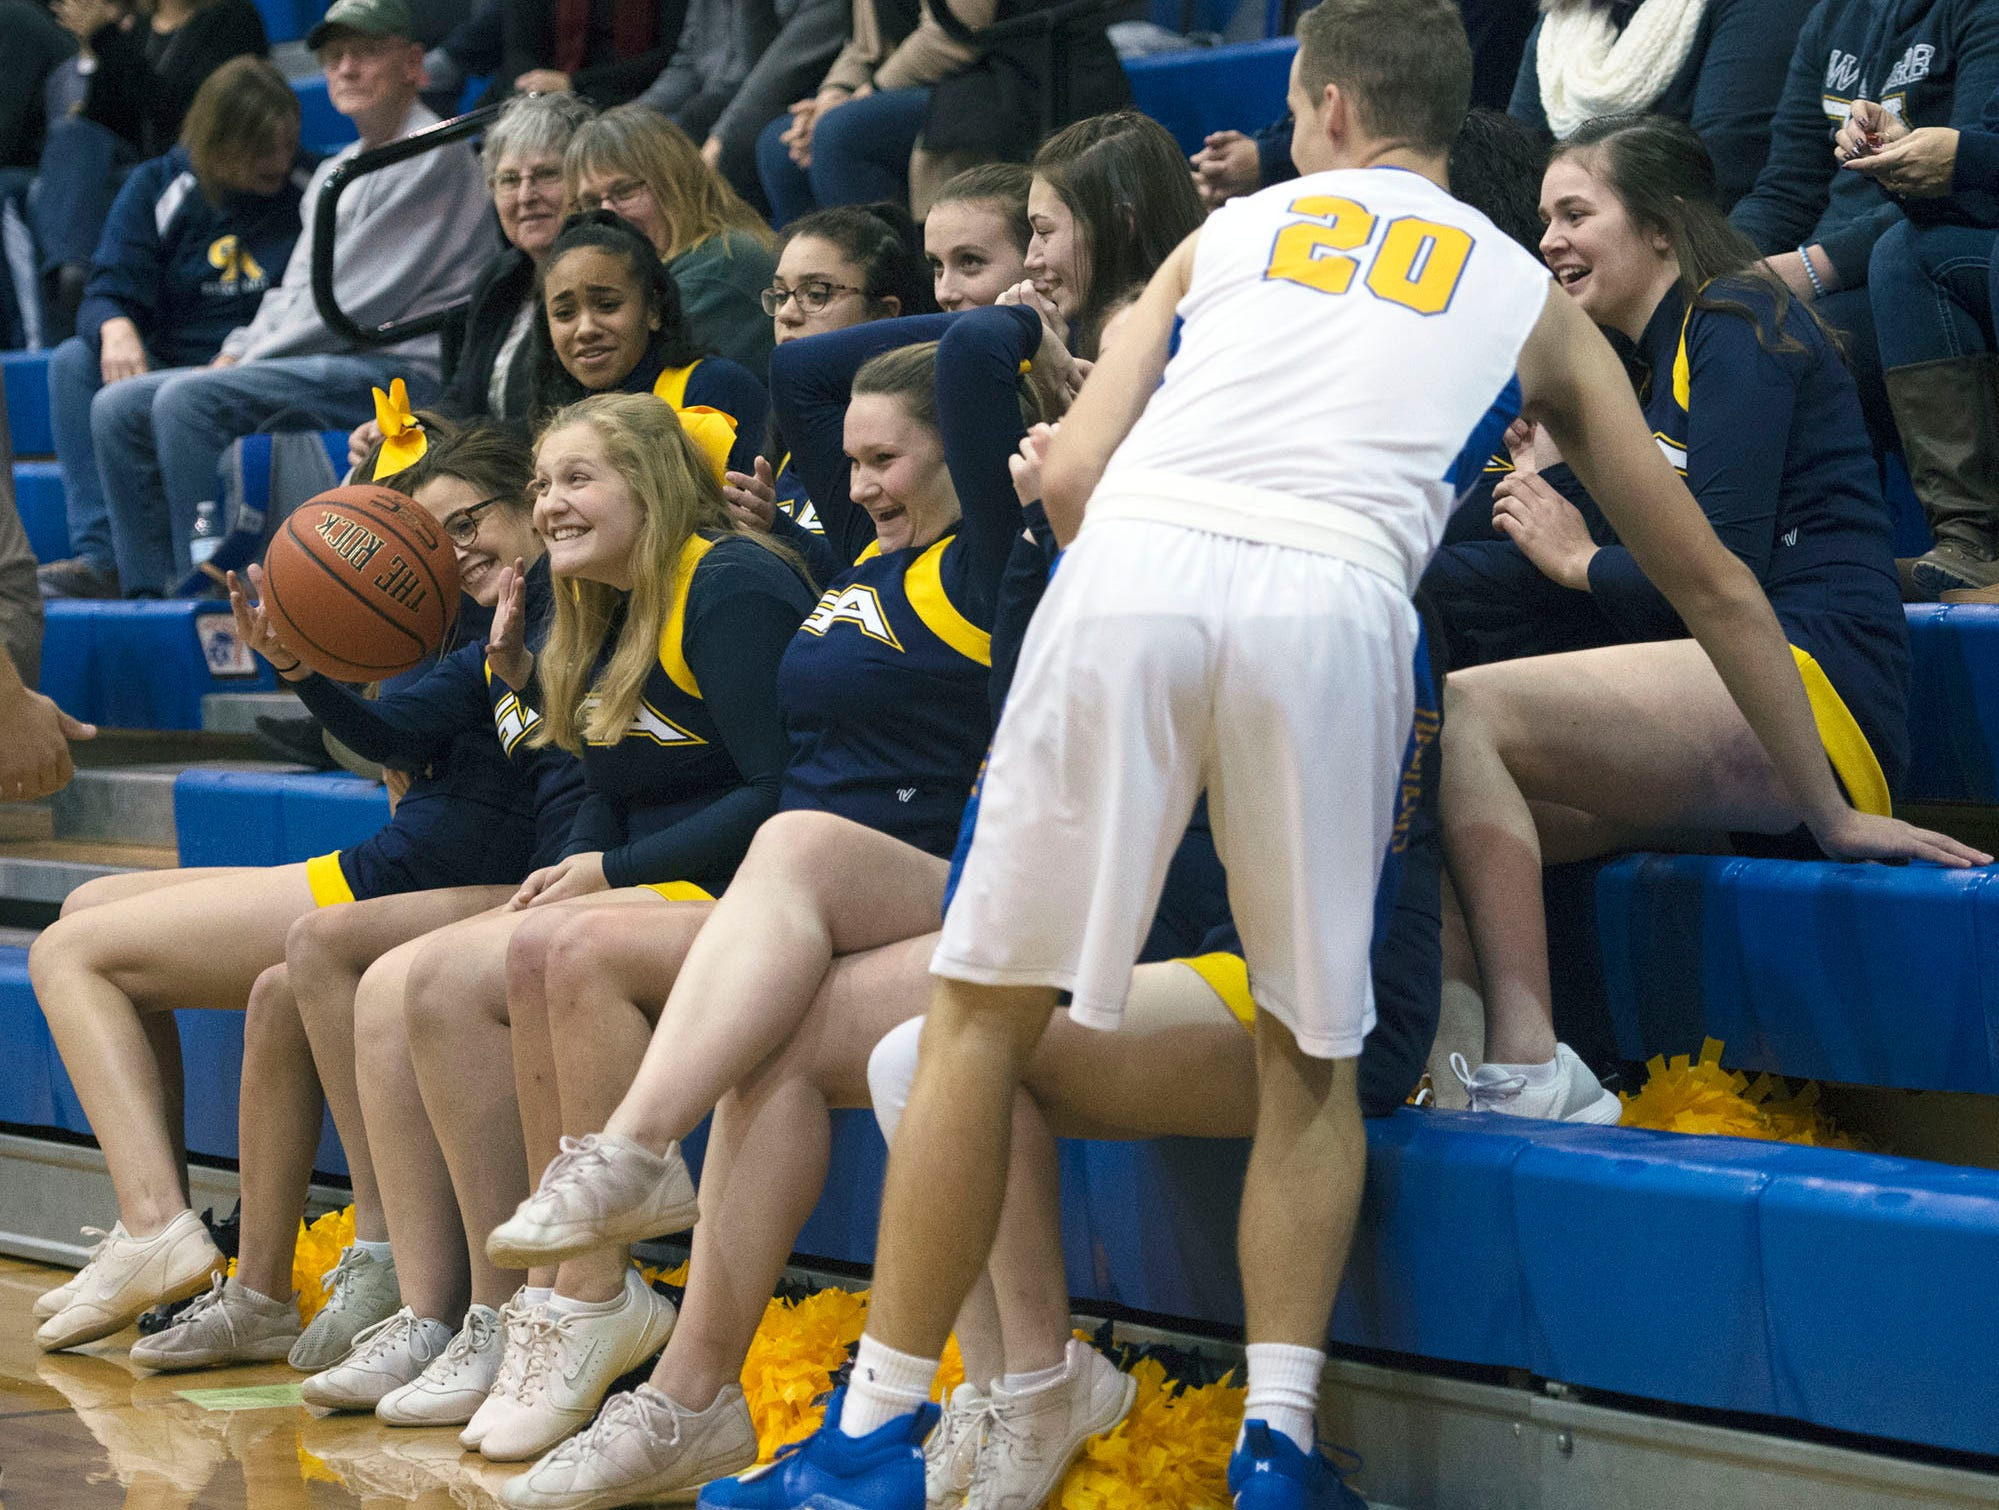 Waynesboro's Aidan Campbell chases the ball as Greencastle cheerleaders react during the Franklin County Tip-Off Tournament, Friday, Dec. 7, 2018.